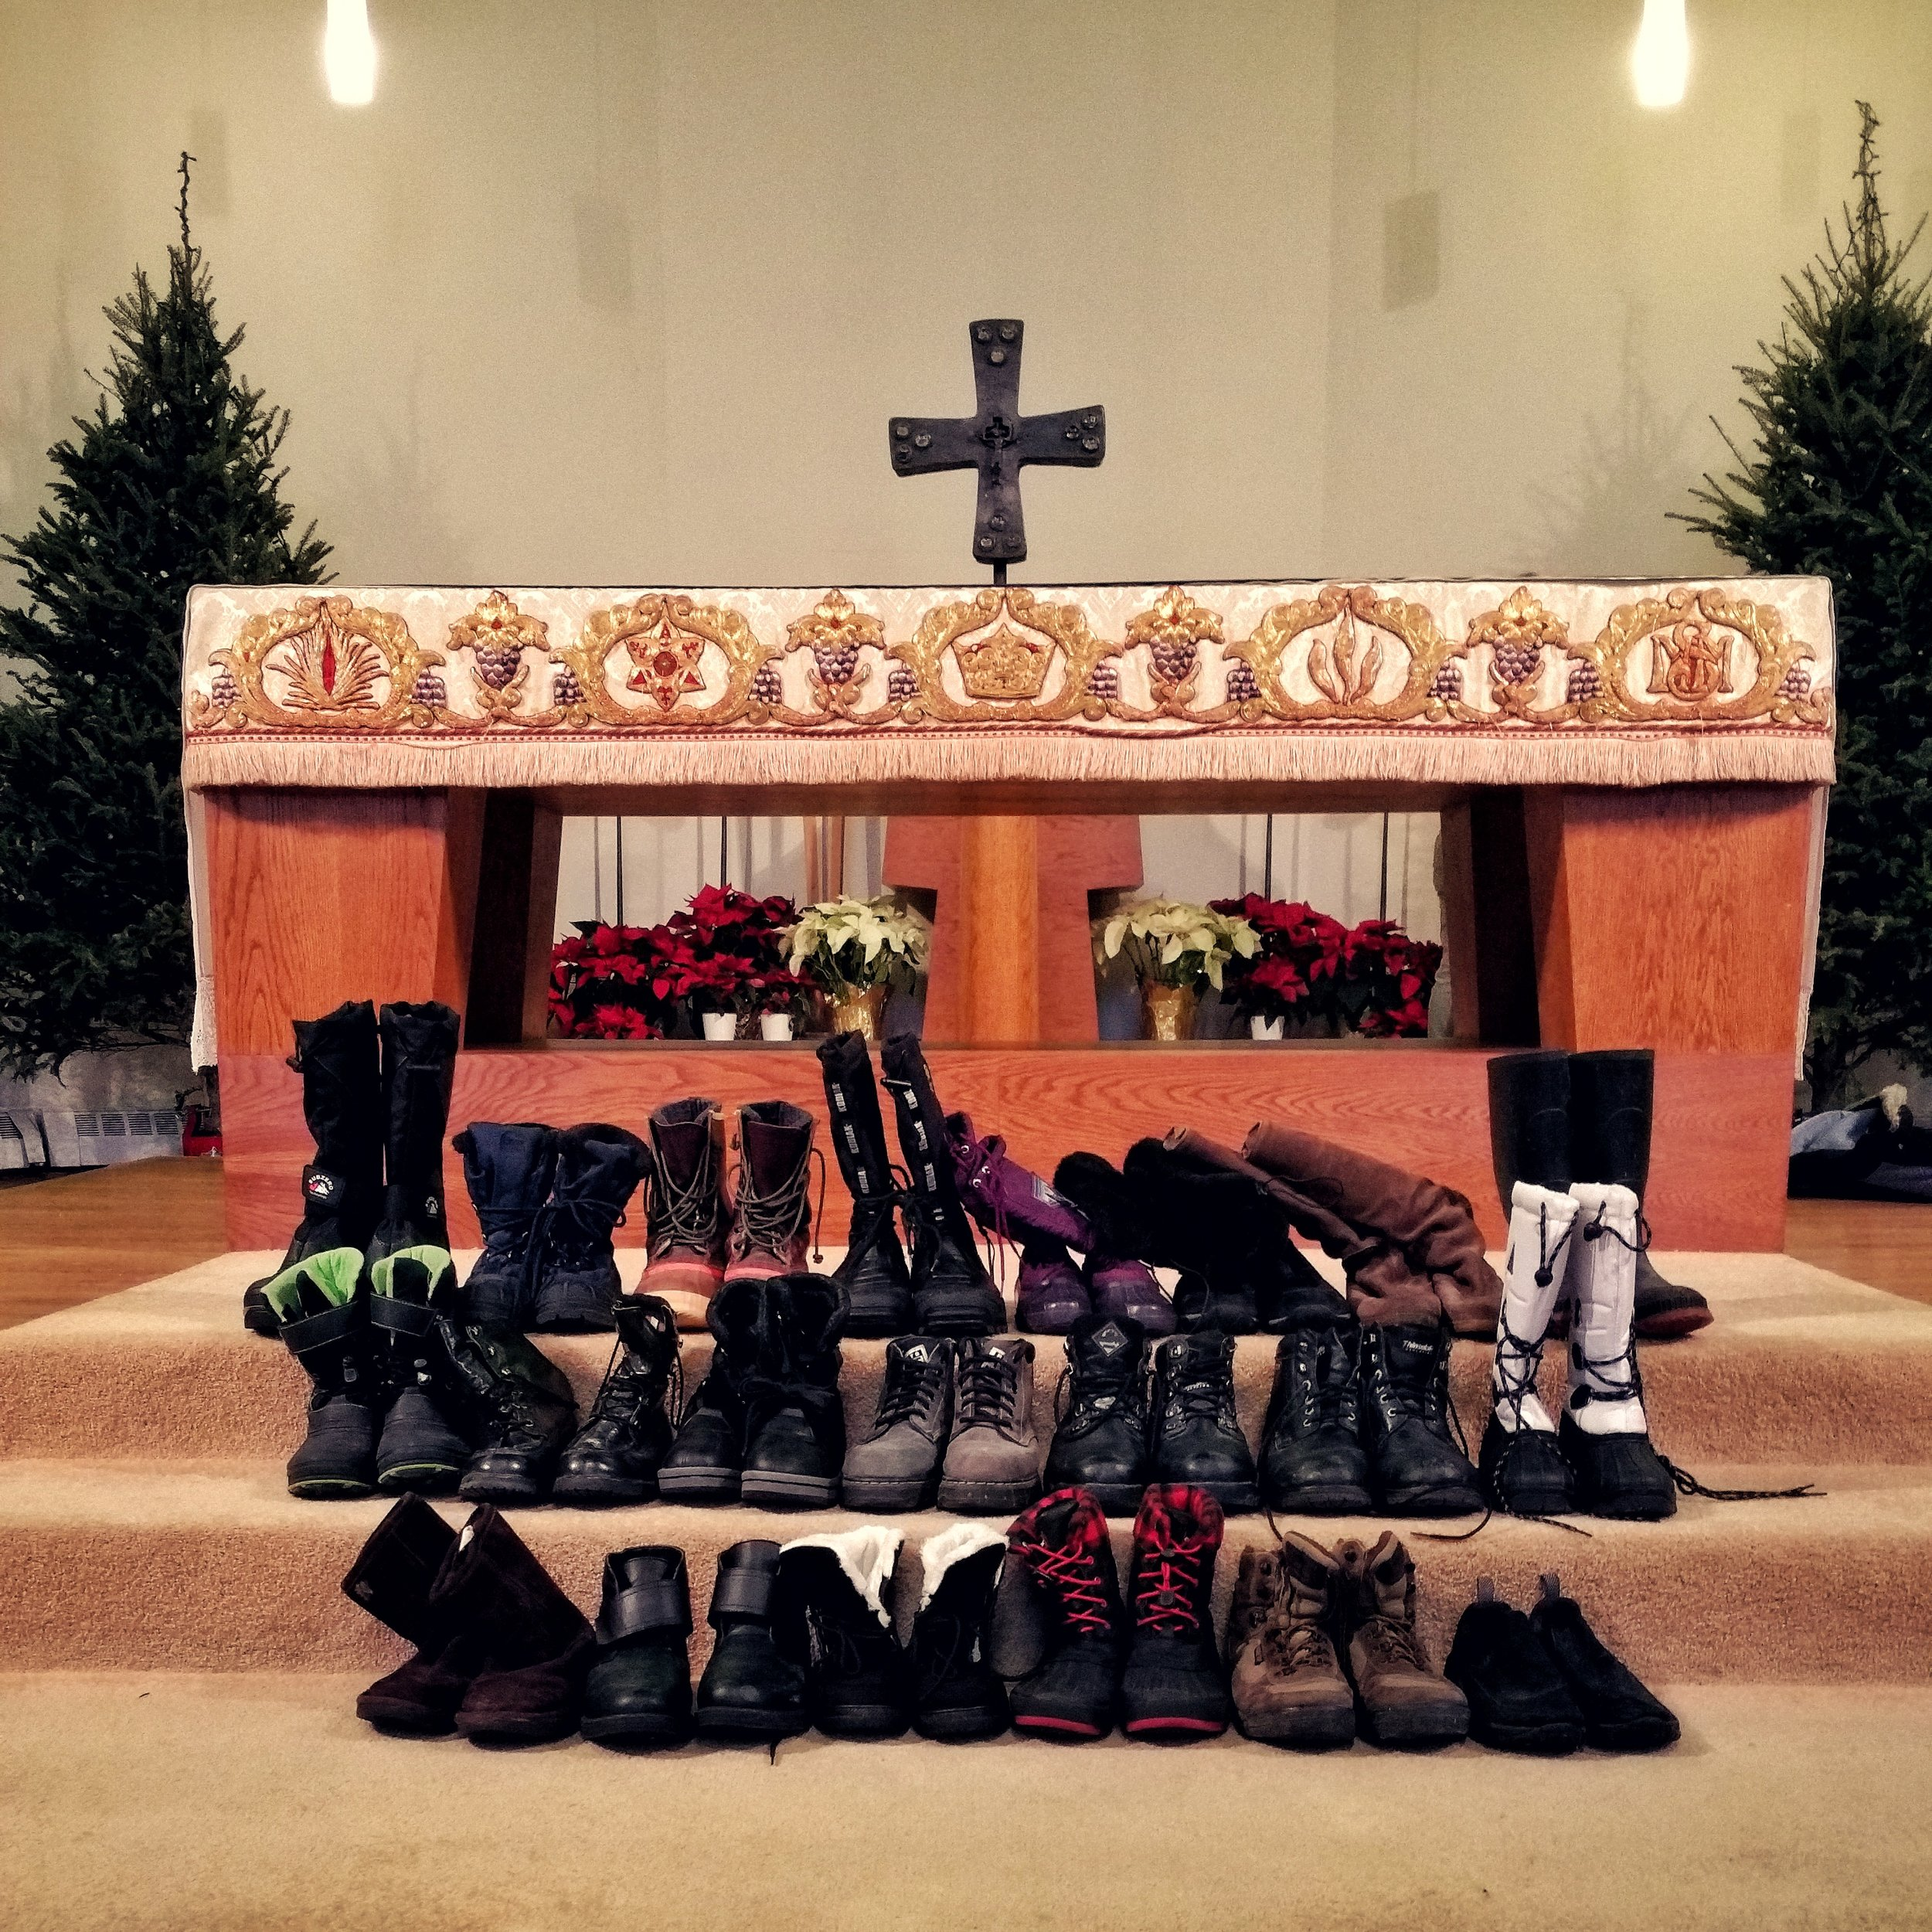 The boots we collected in this year's Boot Drive, before the altar at SMM.